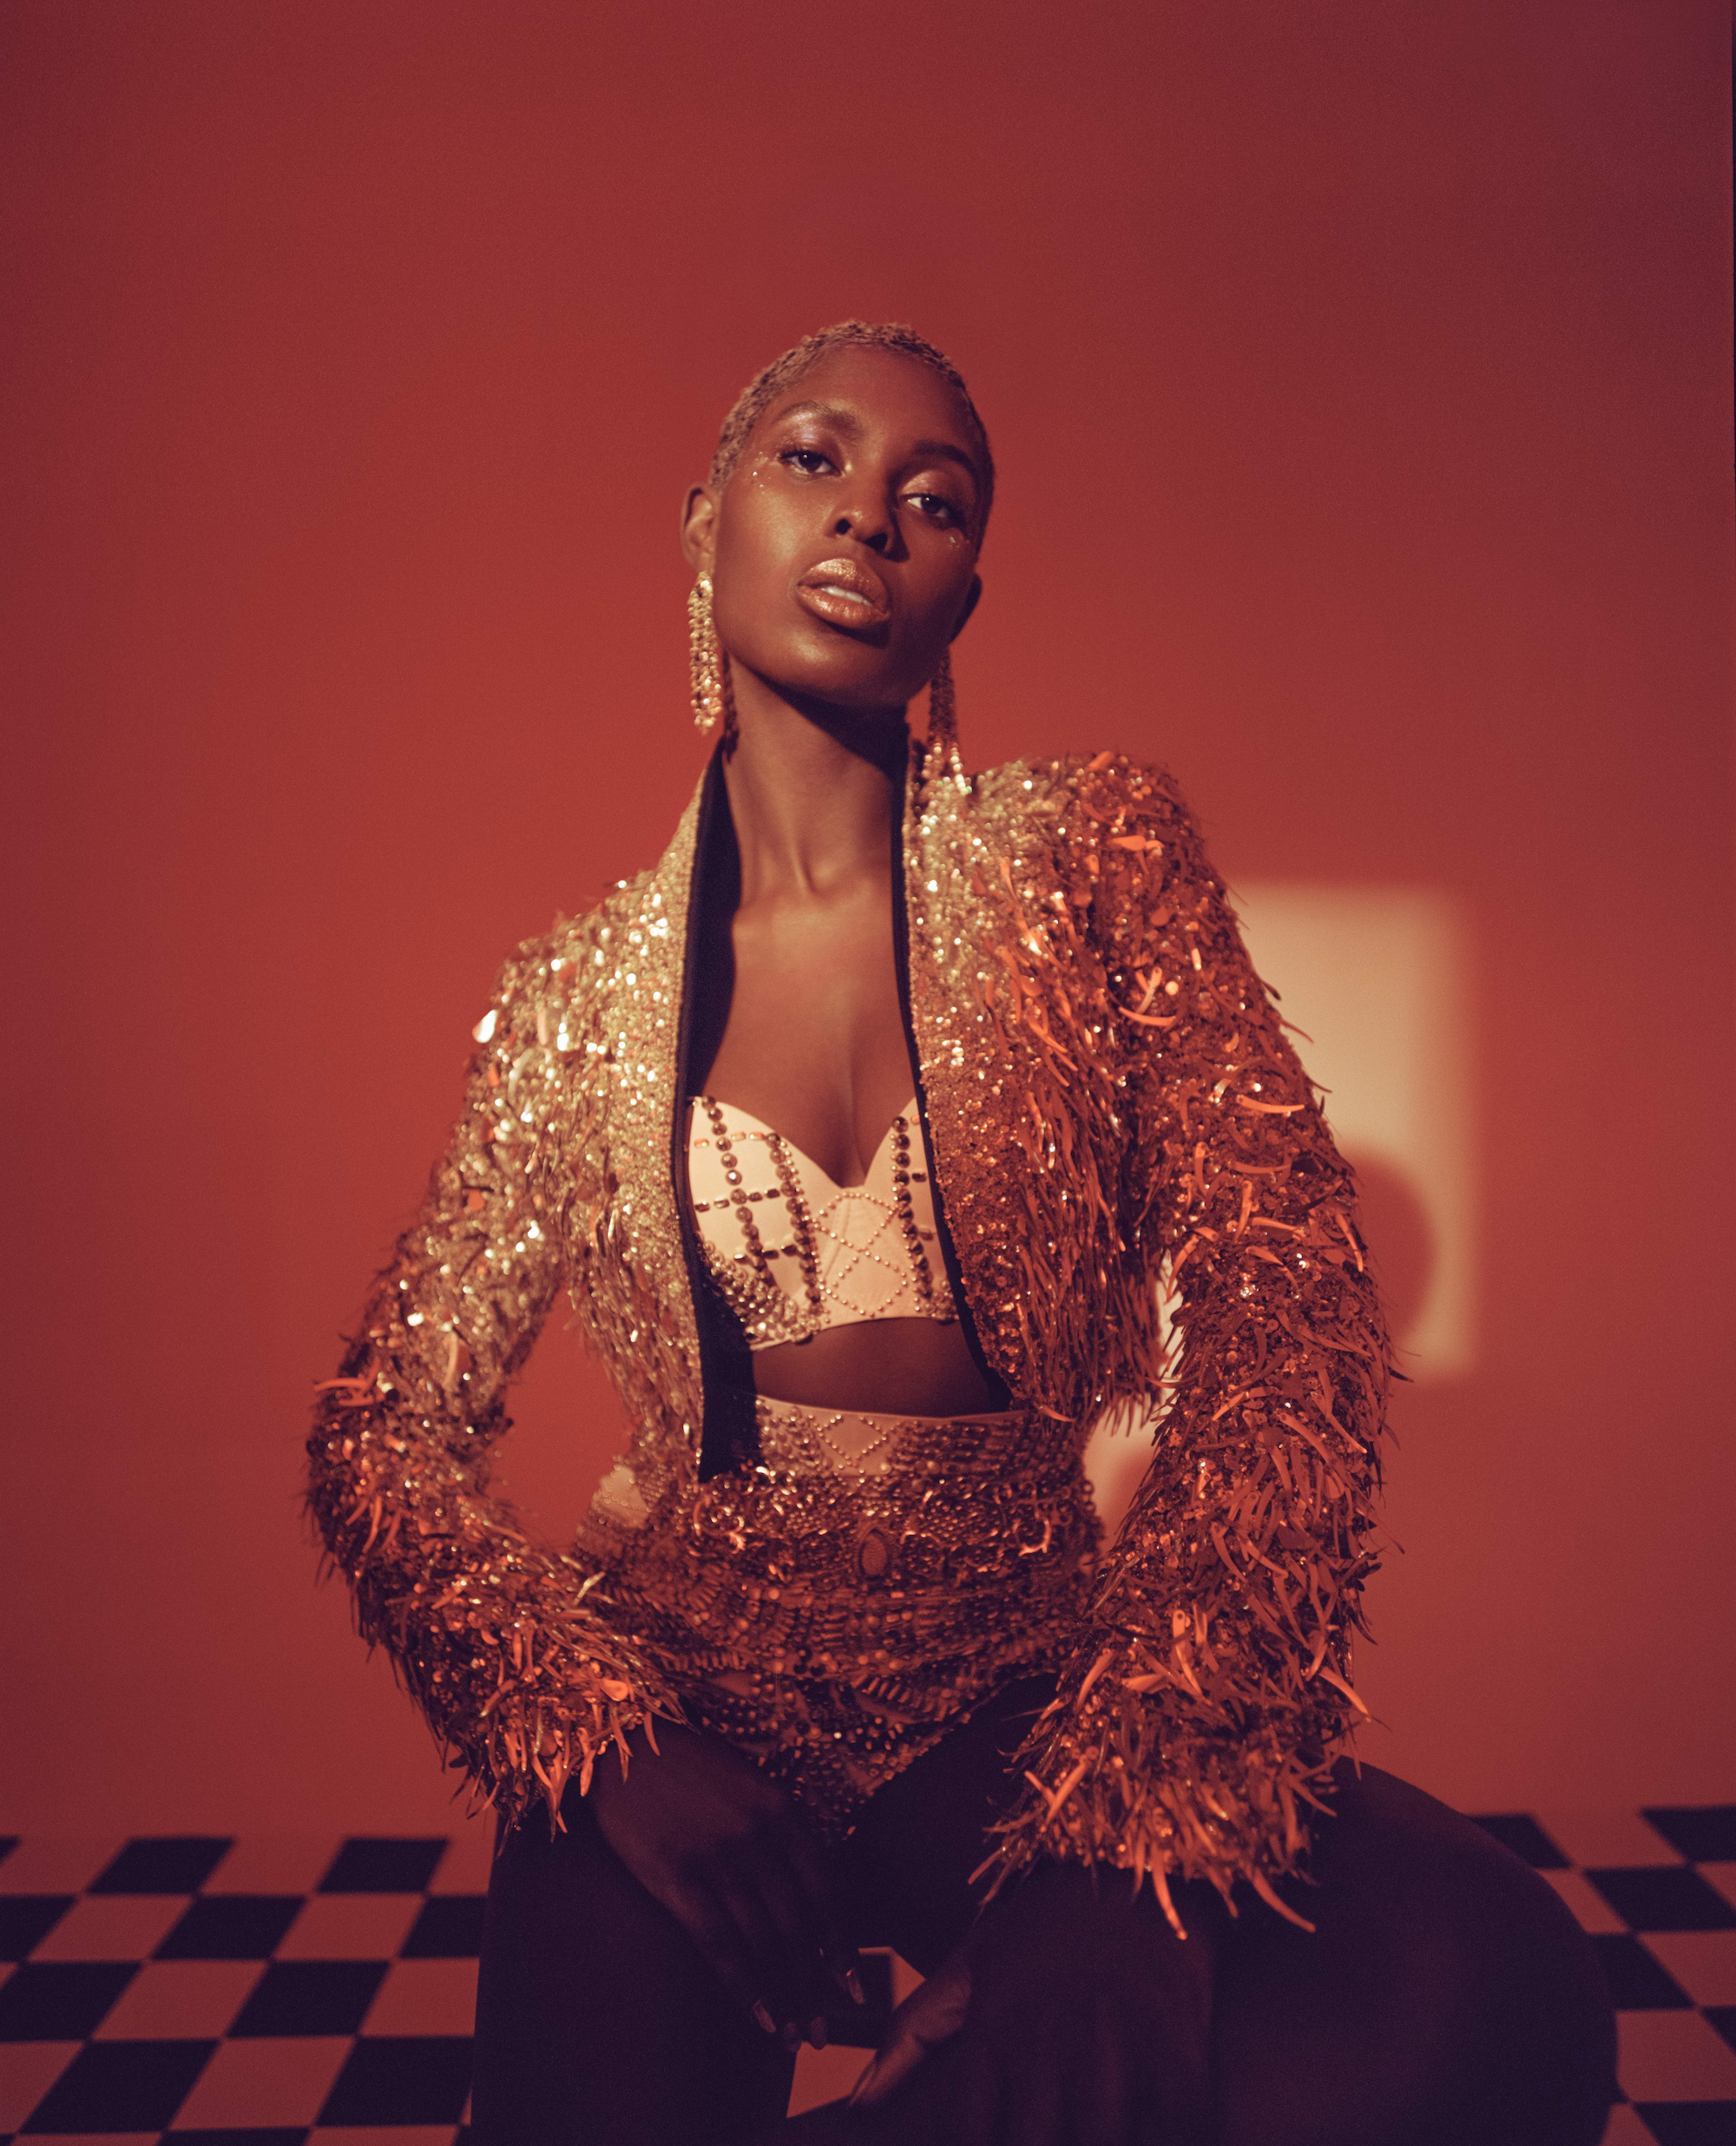 Wonderland Autumn 19 issue interview Jodie Turner-Smith